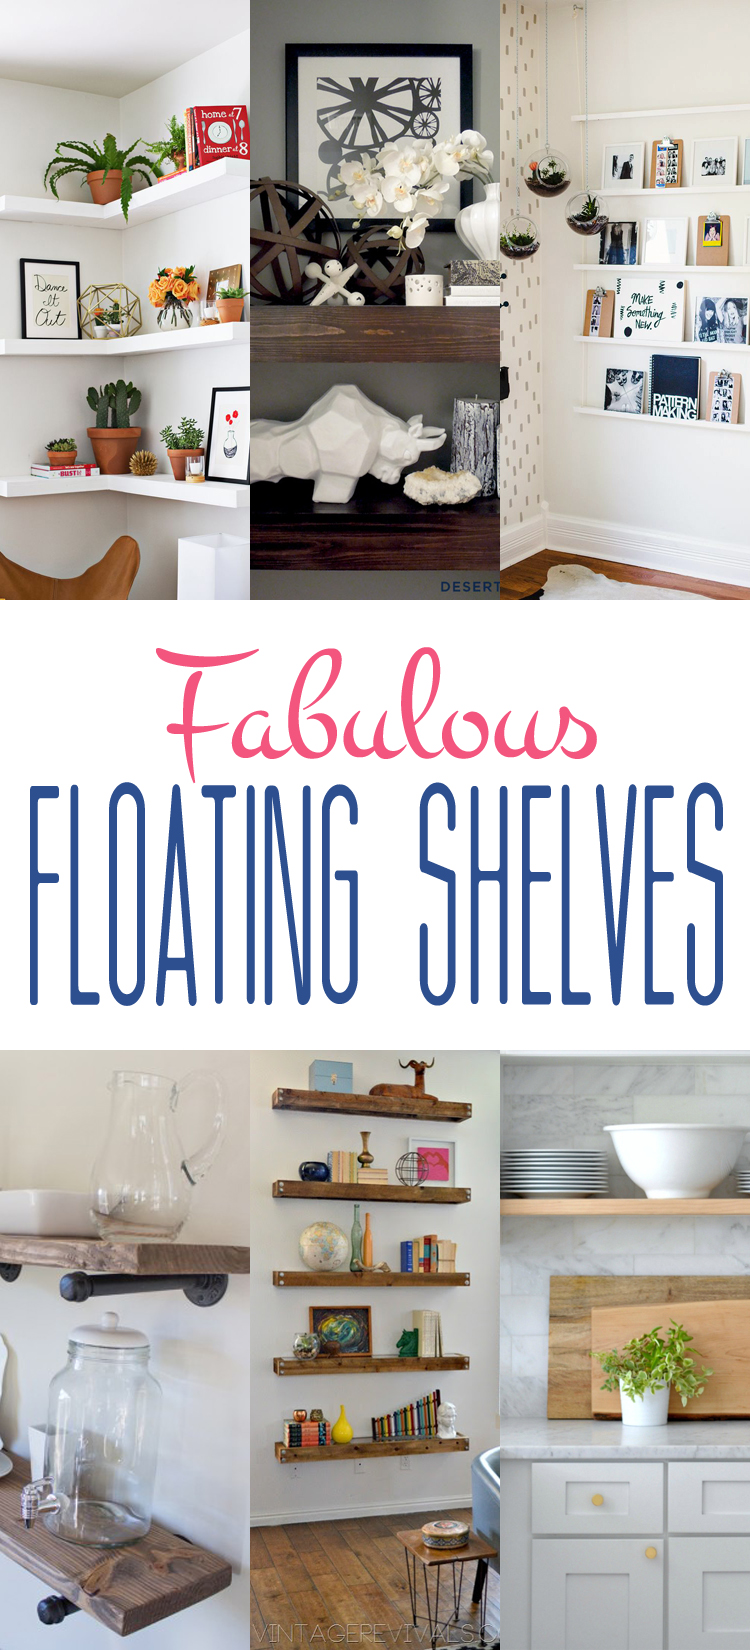 http://thecottagemarket.com/wp-content/uploads/2015/11/FloatingShelves-TOWER-001.jpg